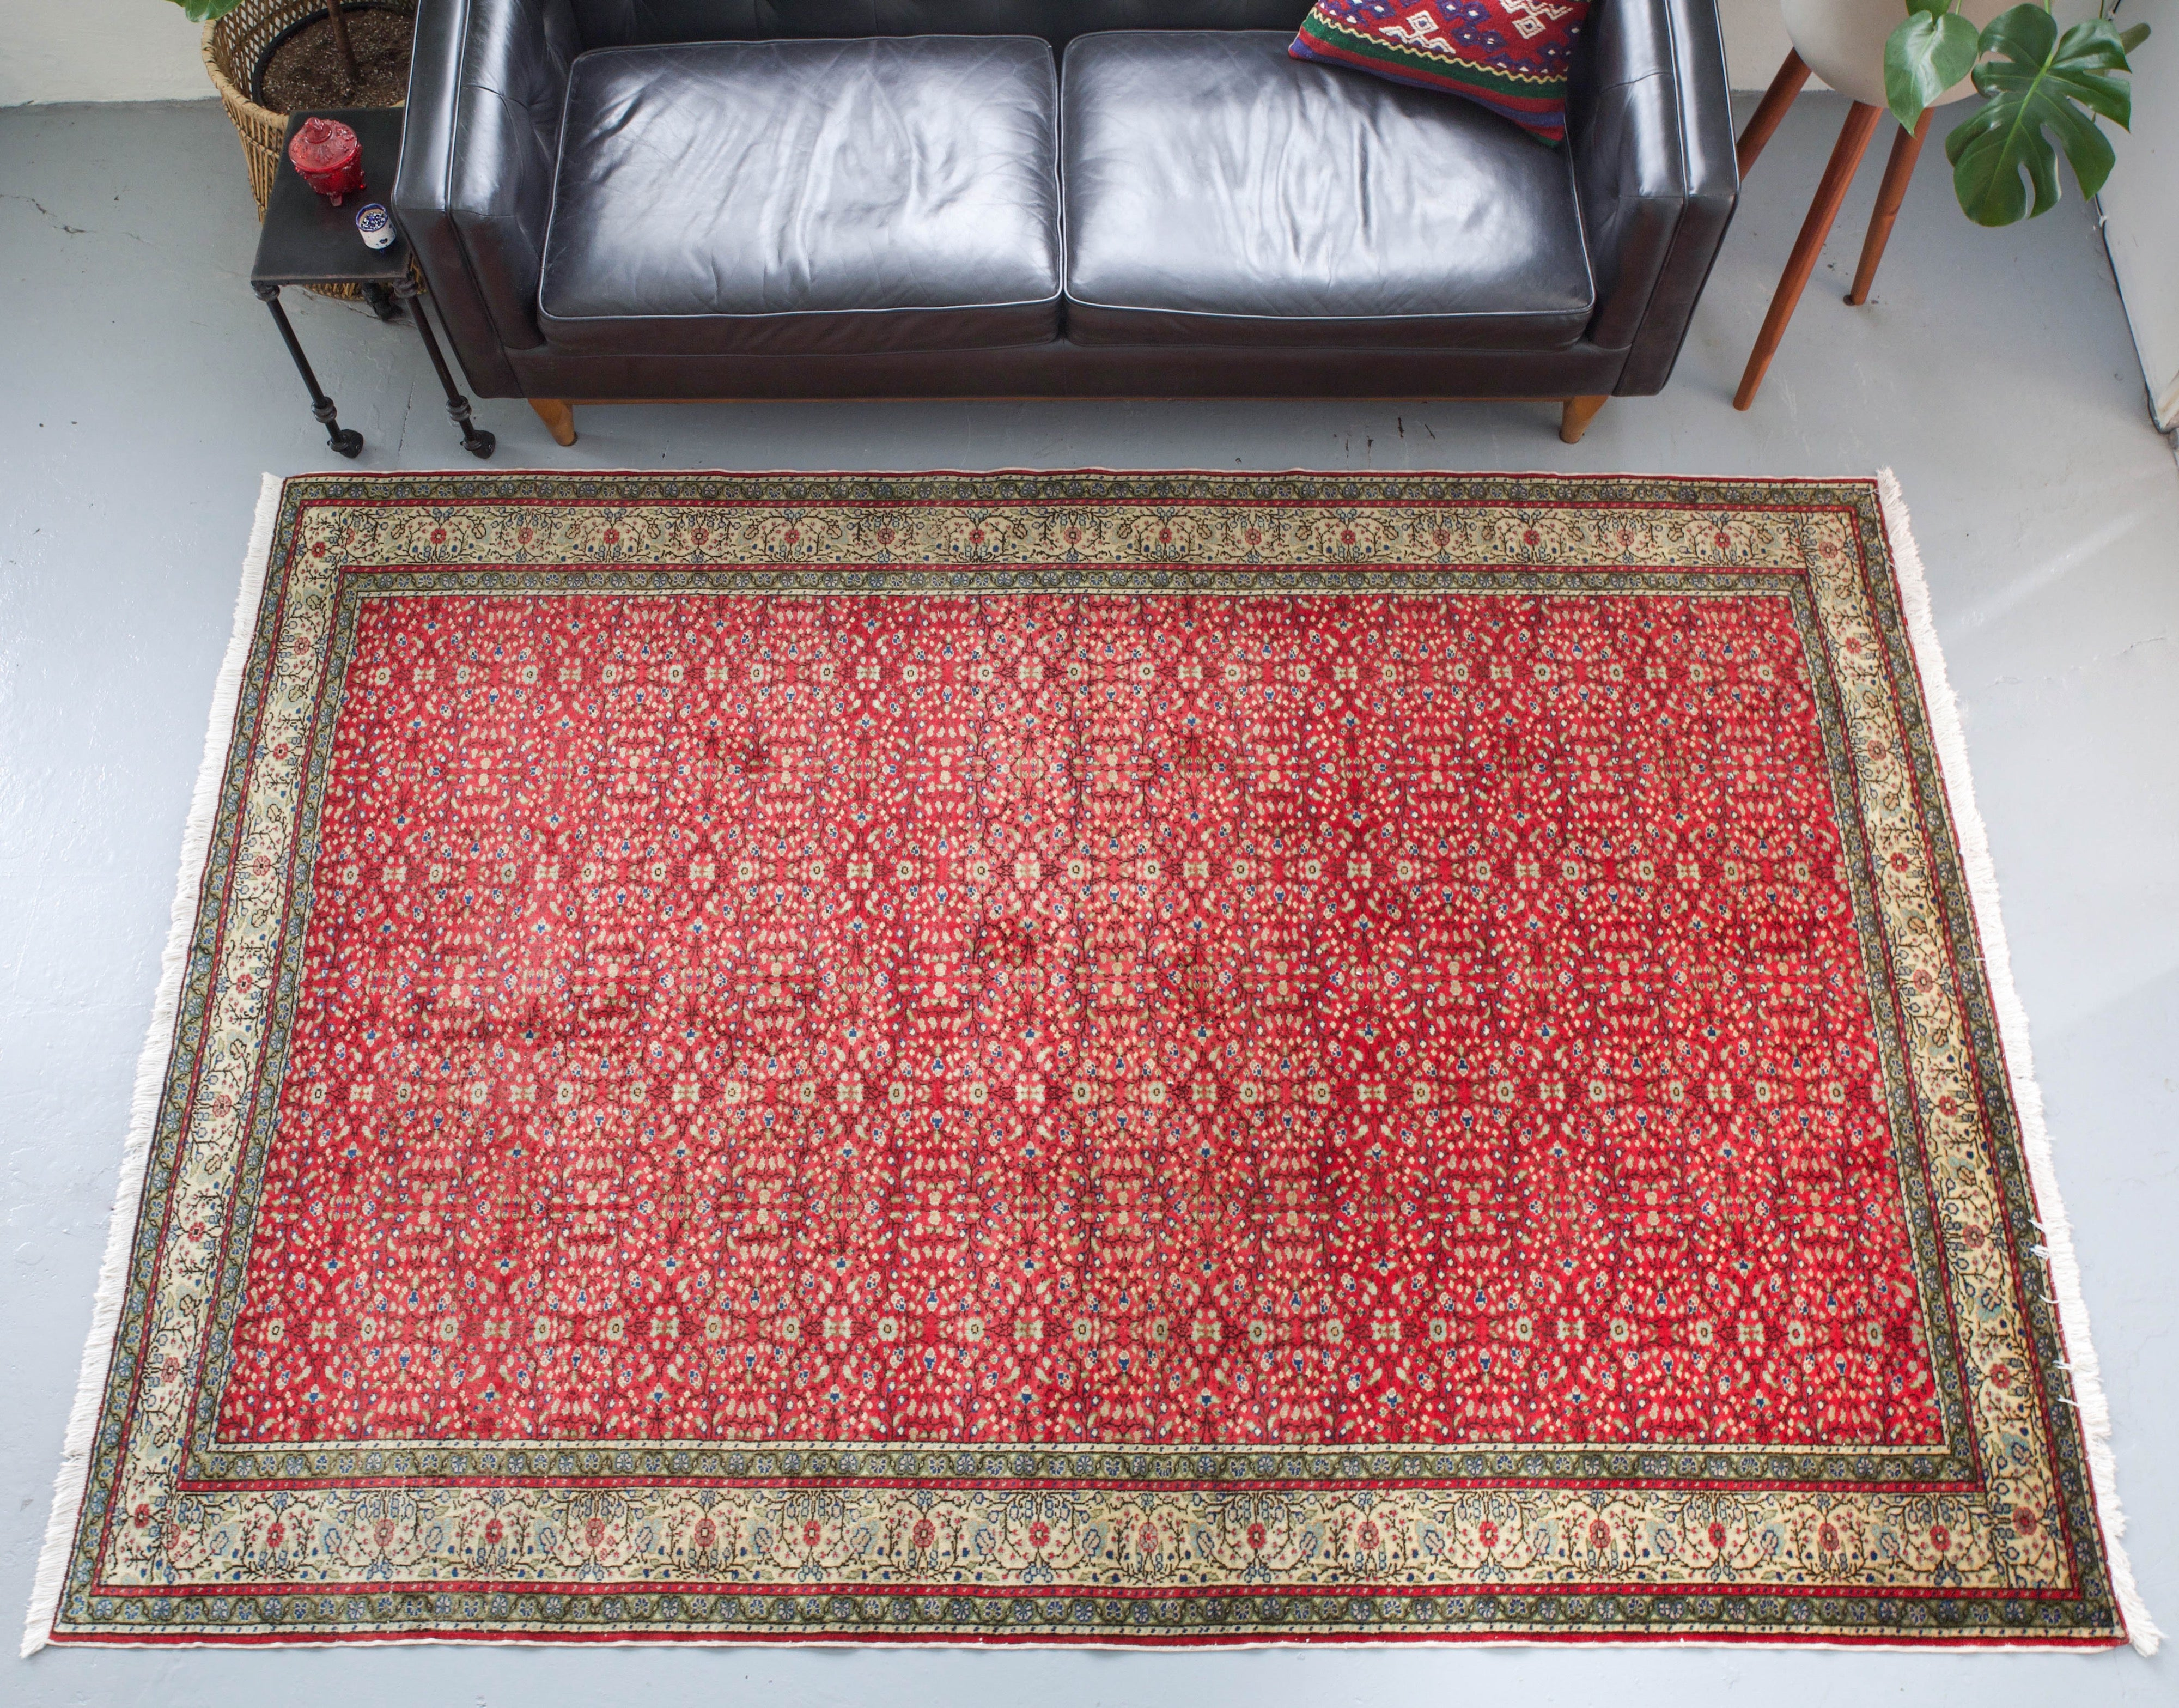 old rug, antique rug, Turkish rug, Portland, Oregon, rug store, rug shop, local shop, bright colors, wild shaman, large rug, area rug, red rug, bold color, burgundy, dark red